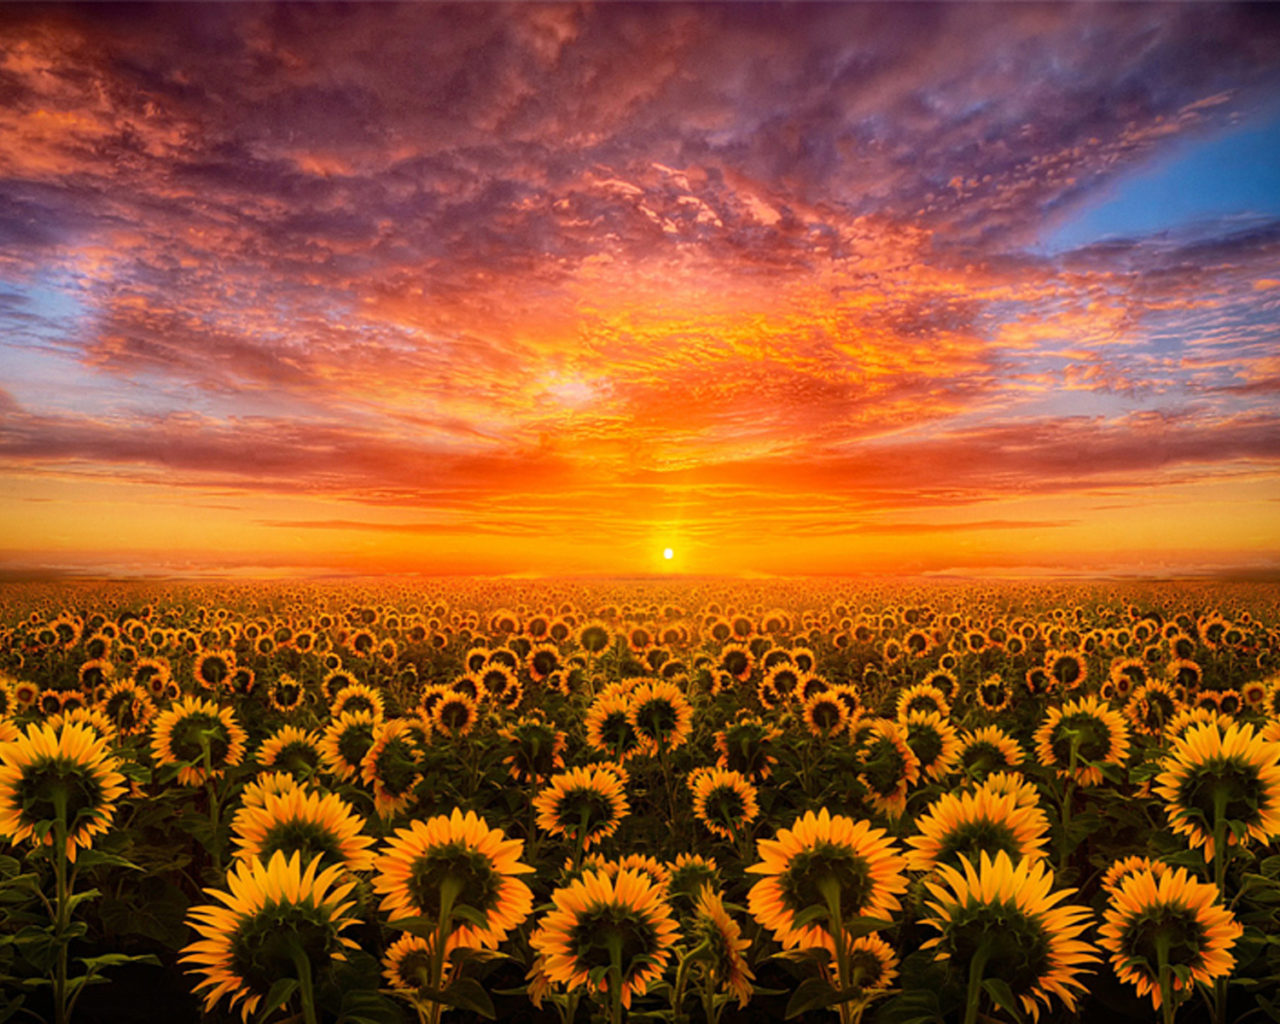 Summer Android Wallpaper Quotes Sunset Red Sky Cloud Field With Sunflower Hd Desktop